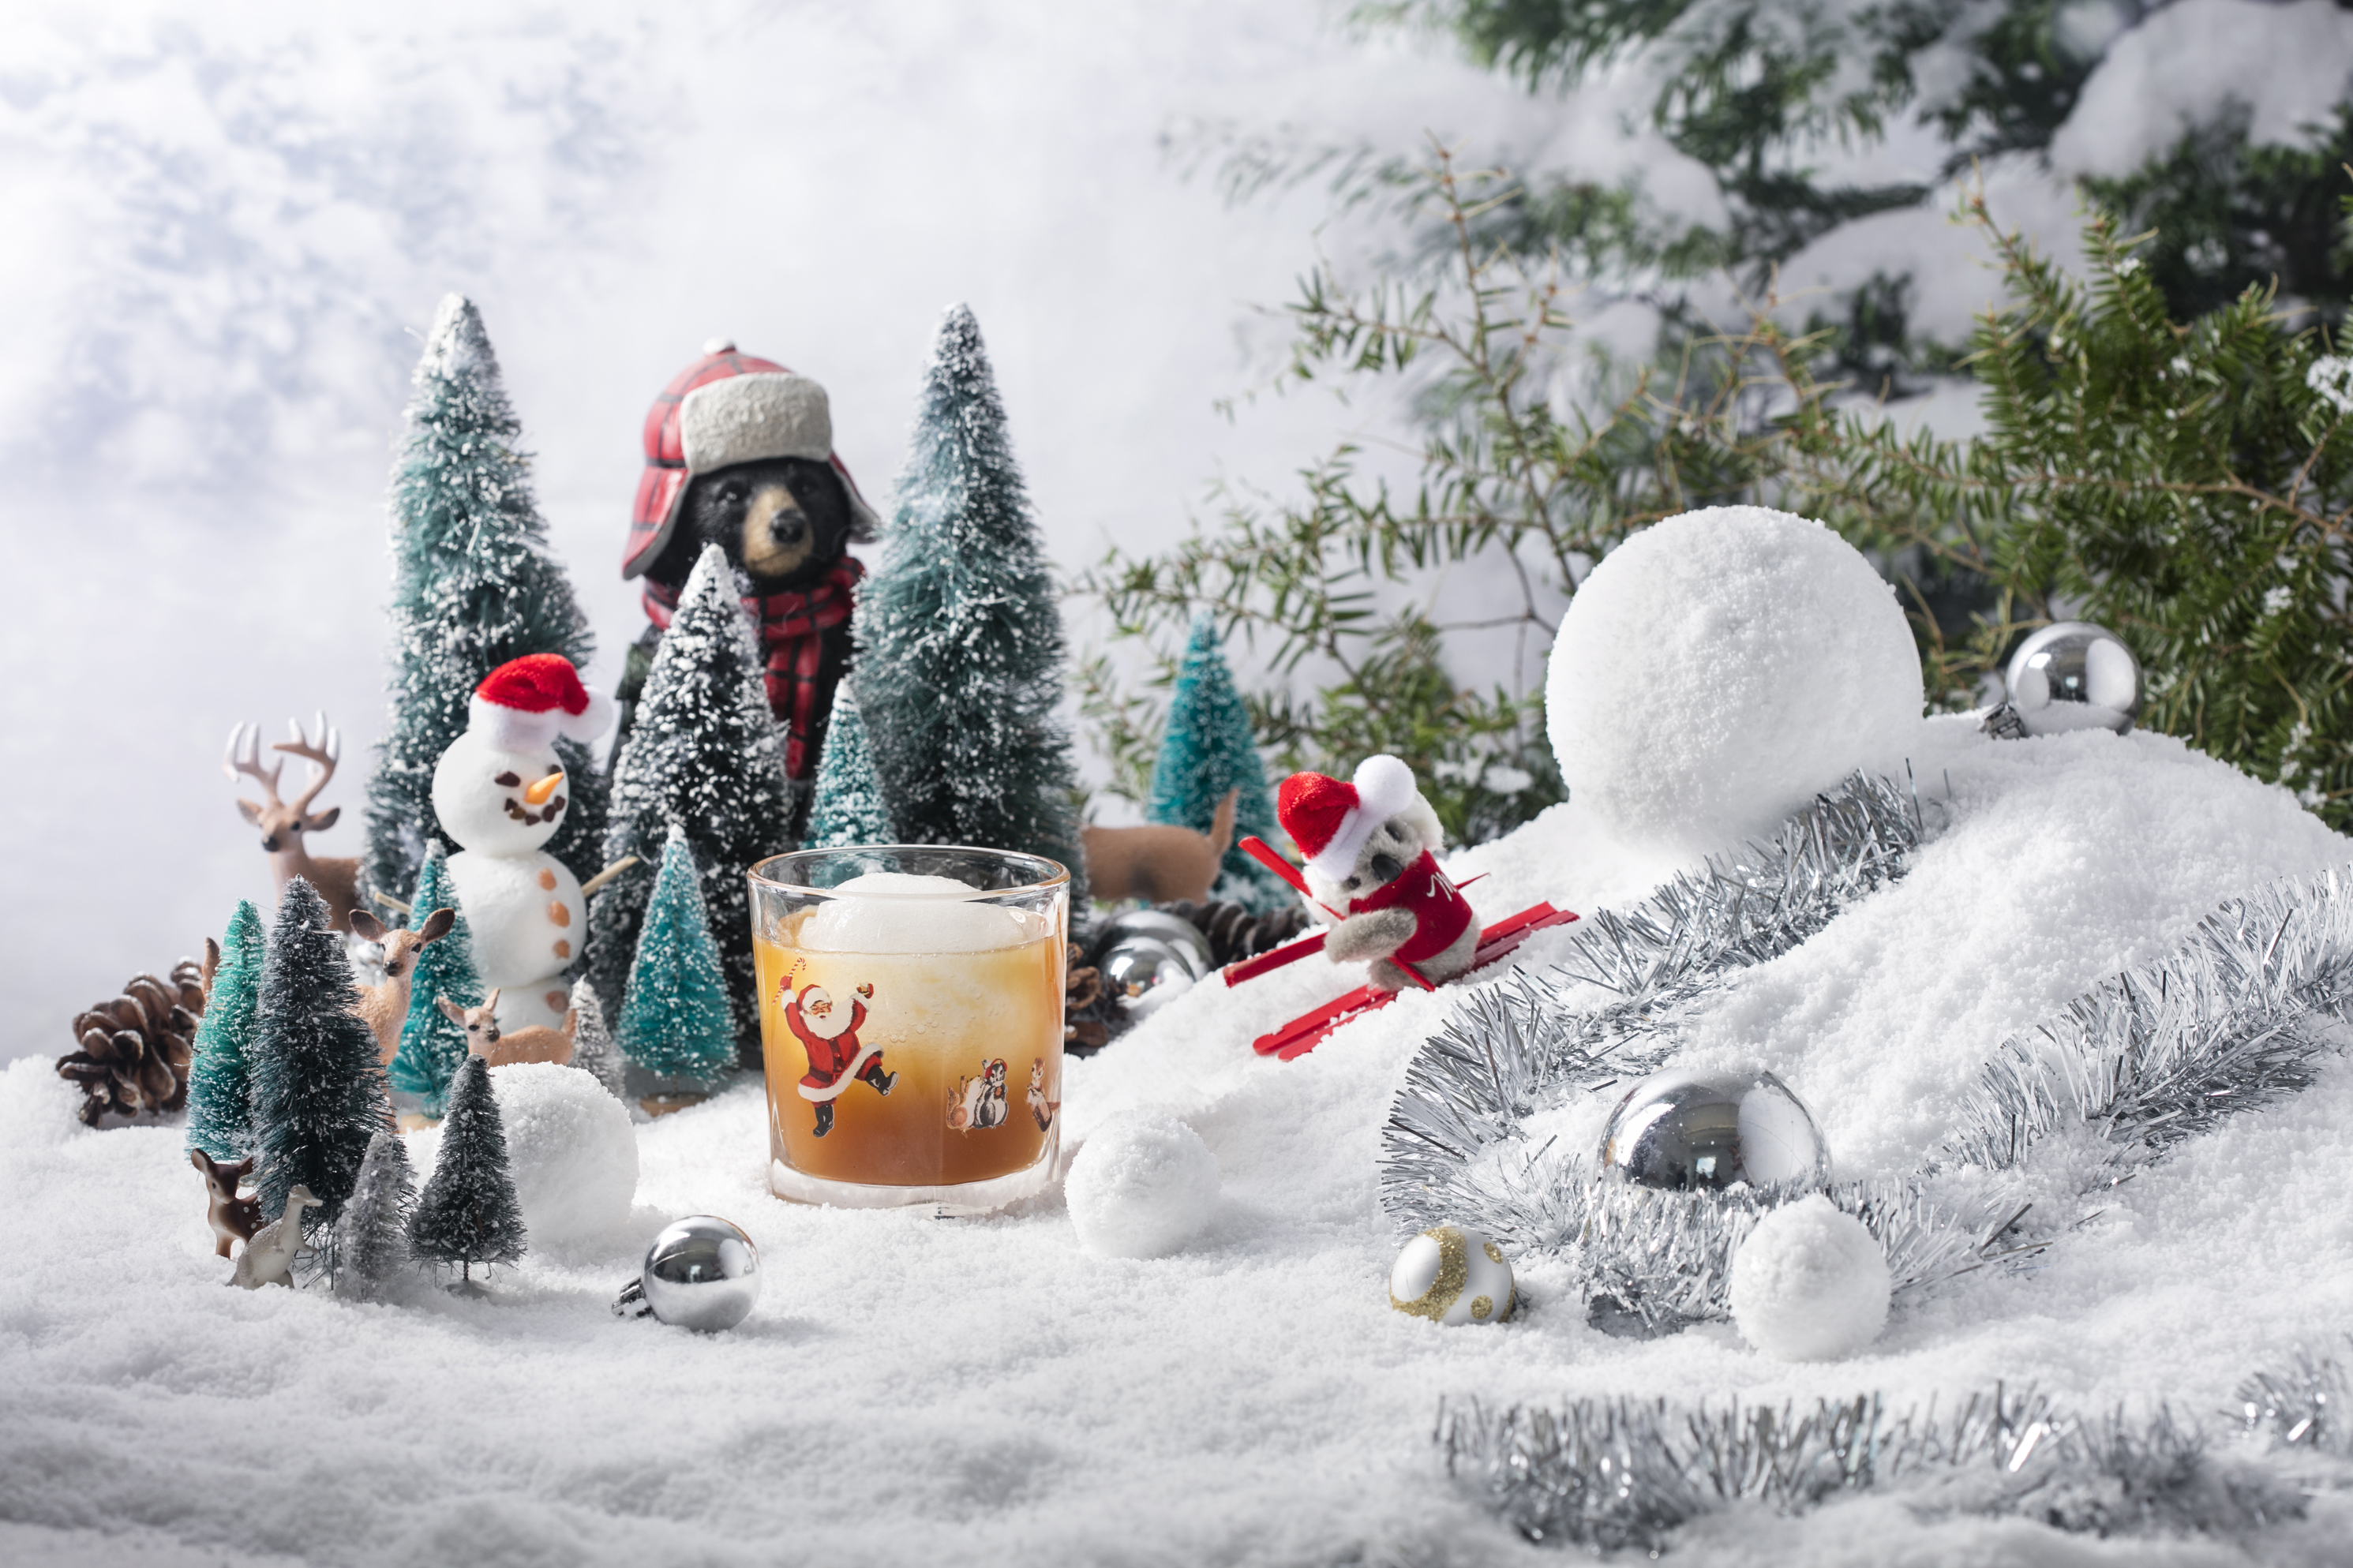 This snowy tableau shows a koala on skis, a snowman, a bear in a hunter's outfit, and reindeer overlooking a cocktail glass.